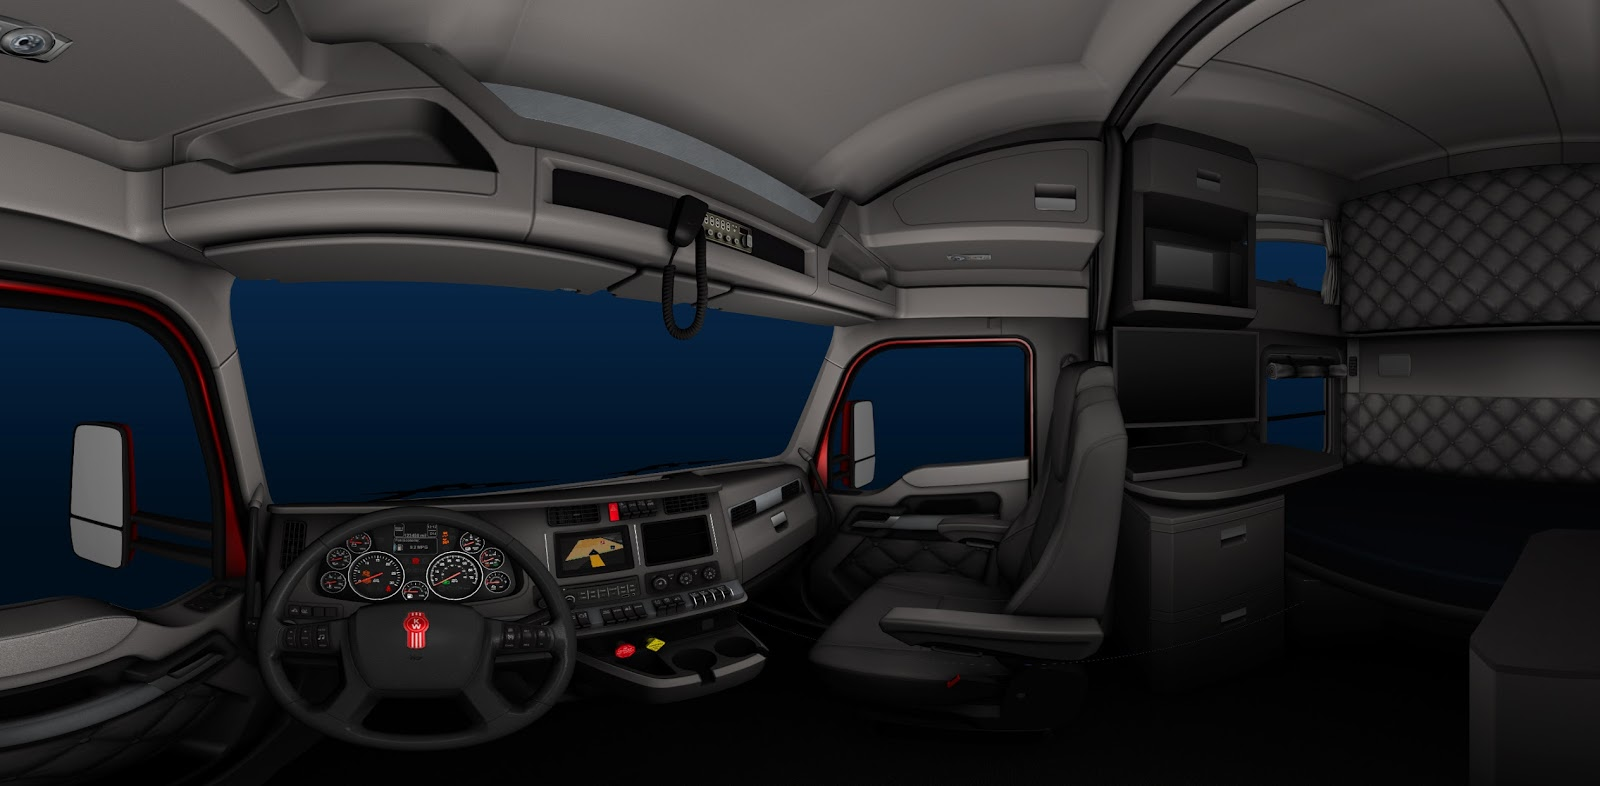 Kenworth T680 Truck Interior In American Truck Simulator Game 1